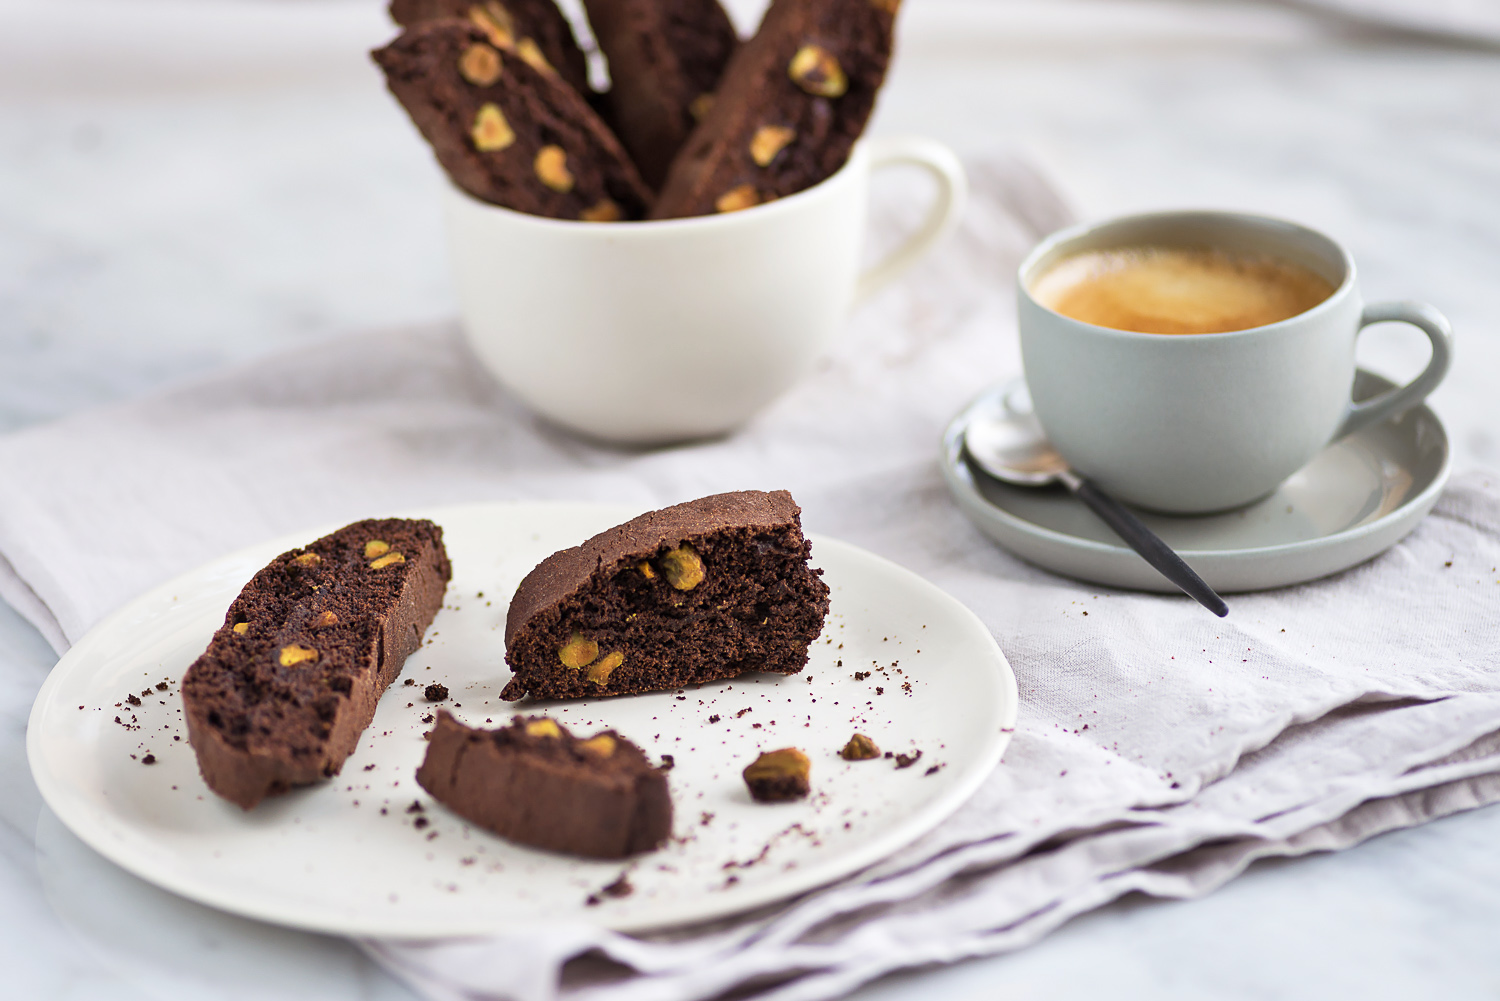 Eric Lanlard's Chocolate and Pistachio Biscotti